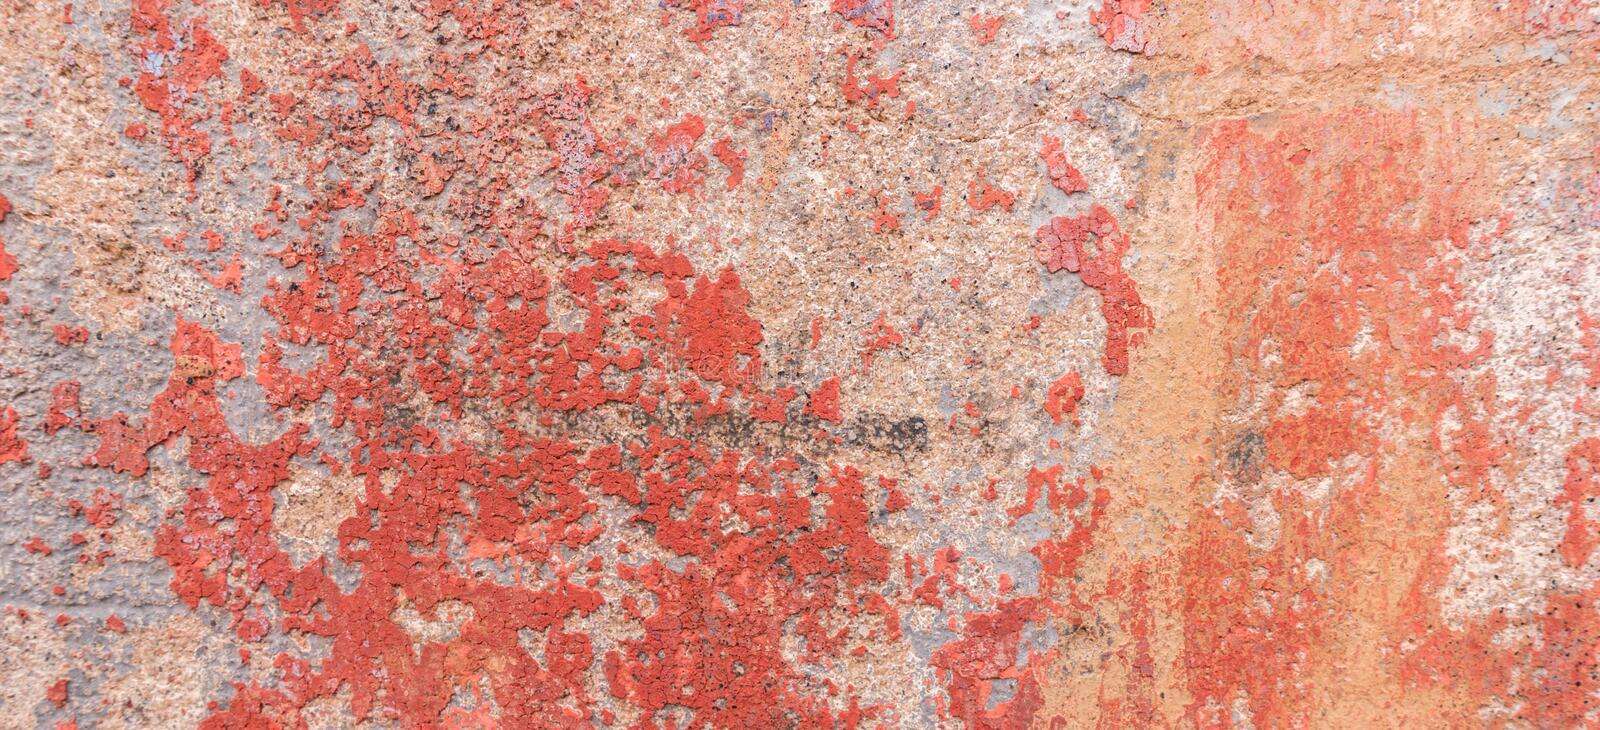 Old weathered painted wall background texture. Red dirty peeled plaster wall with falling off flakes of paint. stock image